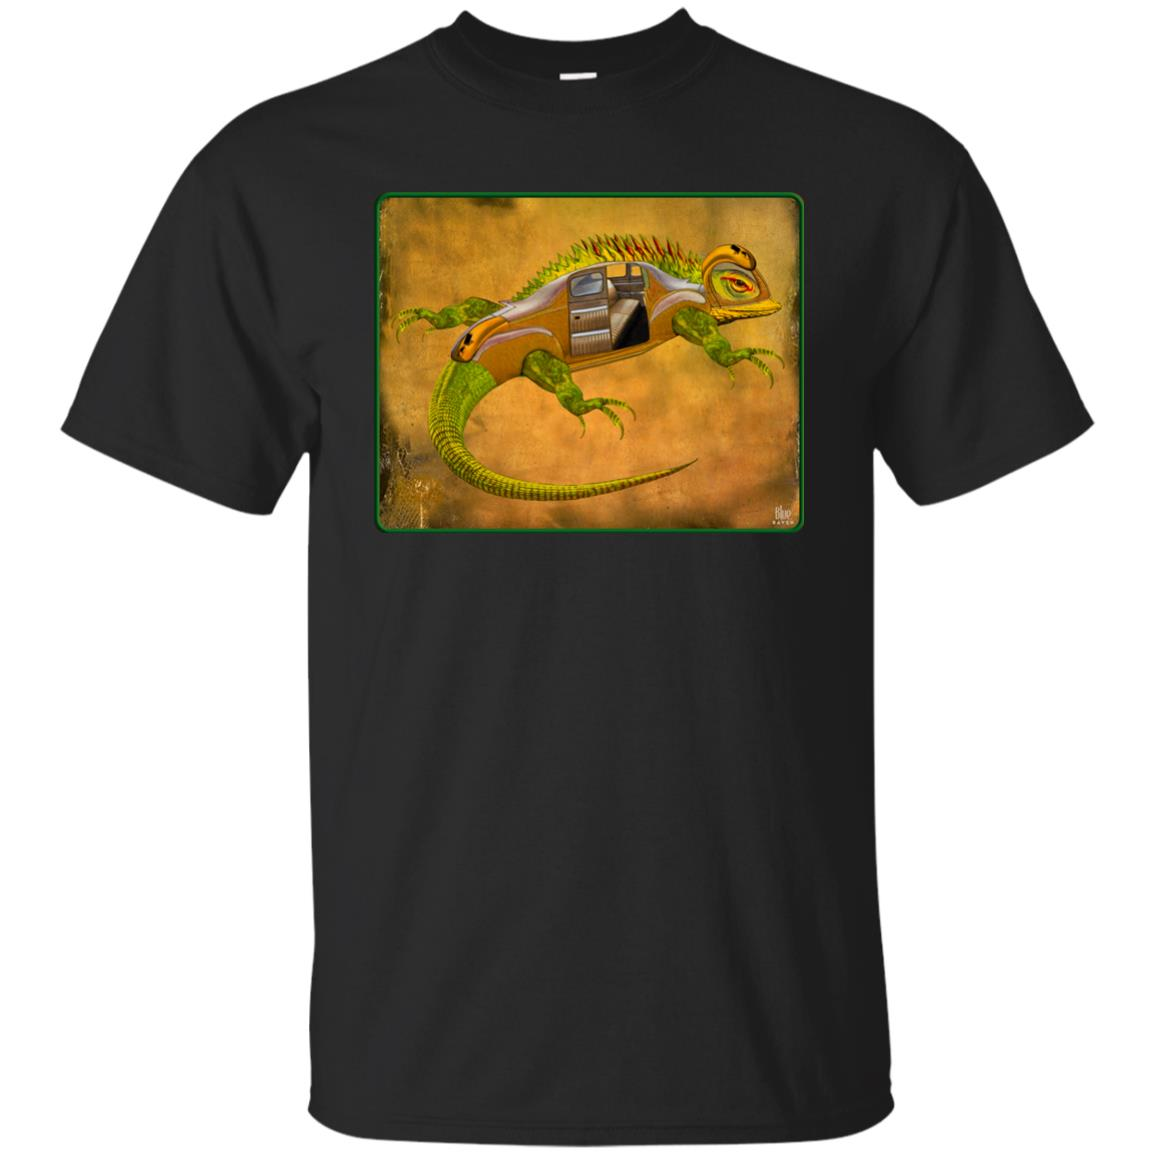 Uber Lizard - green - Men's Classic Fit T-Shirt